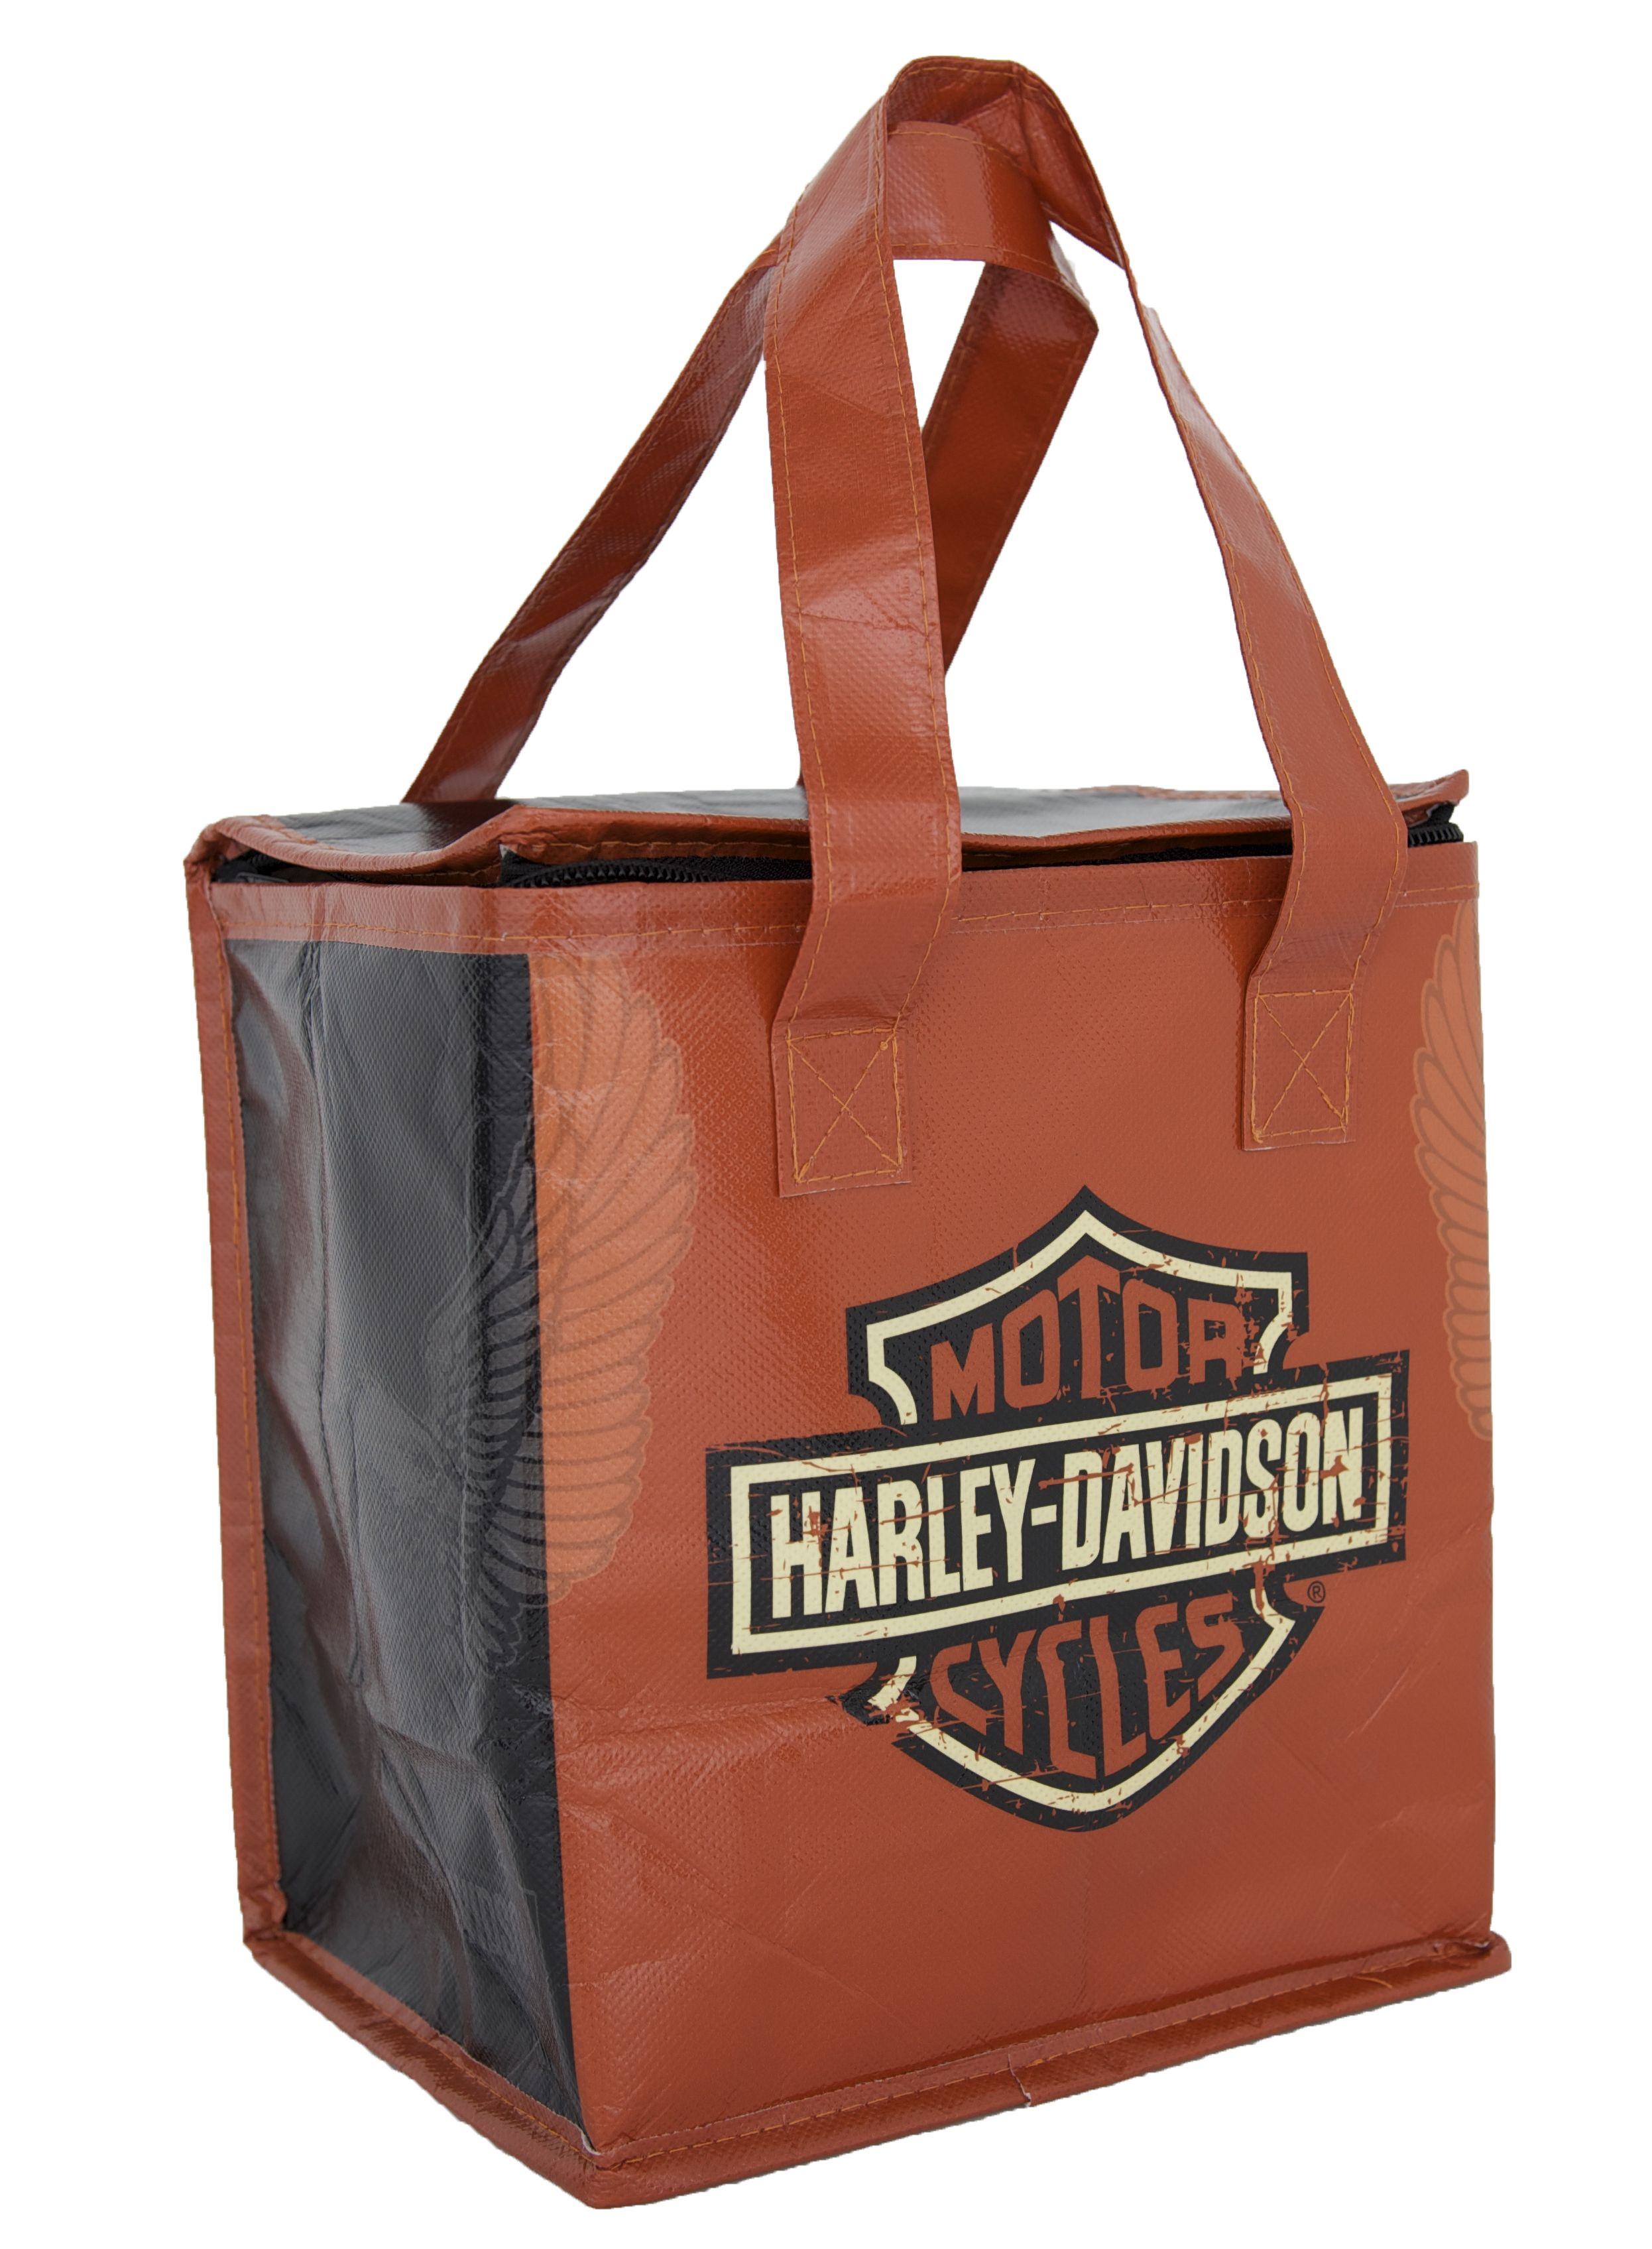 Harley Davidson Insulated Lunch Tote